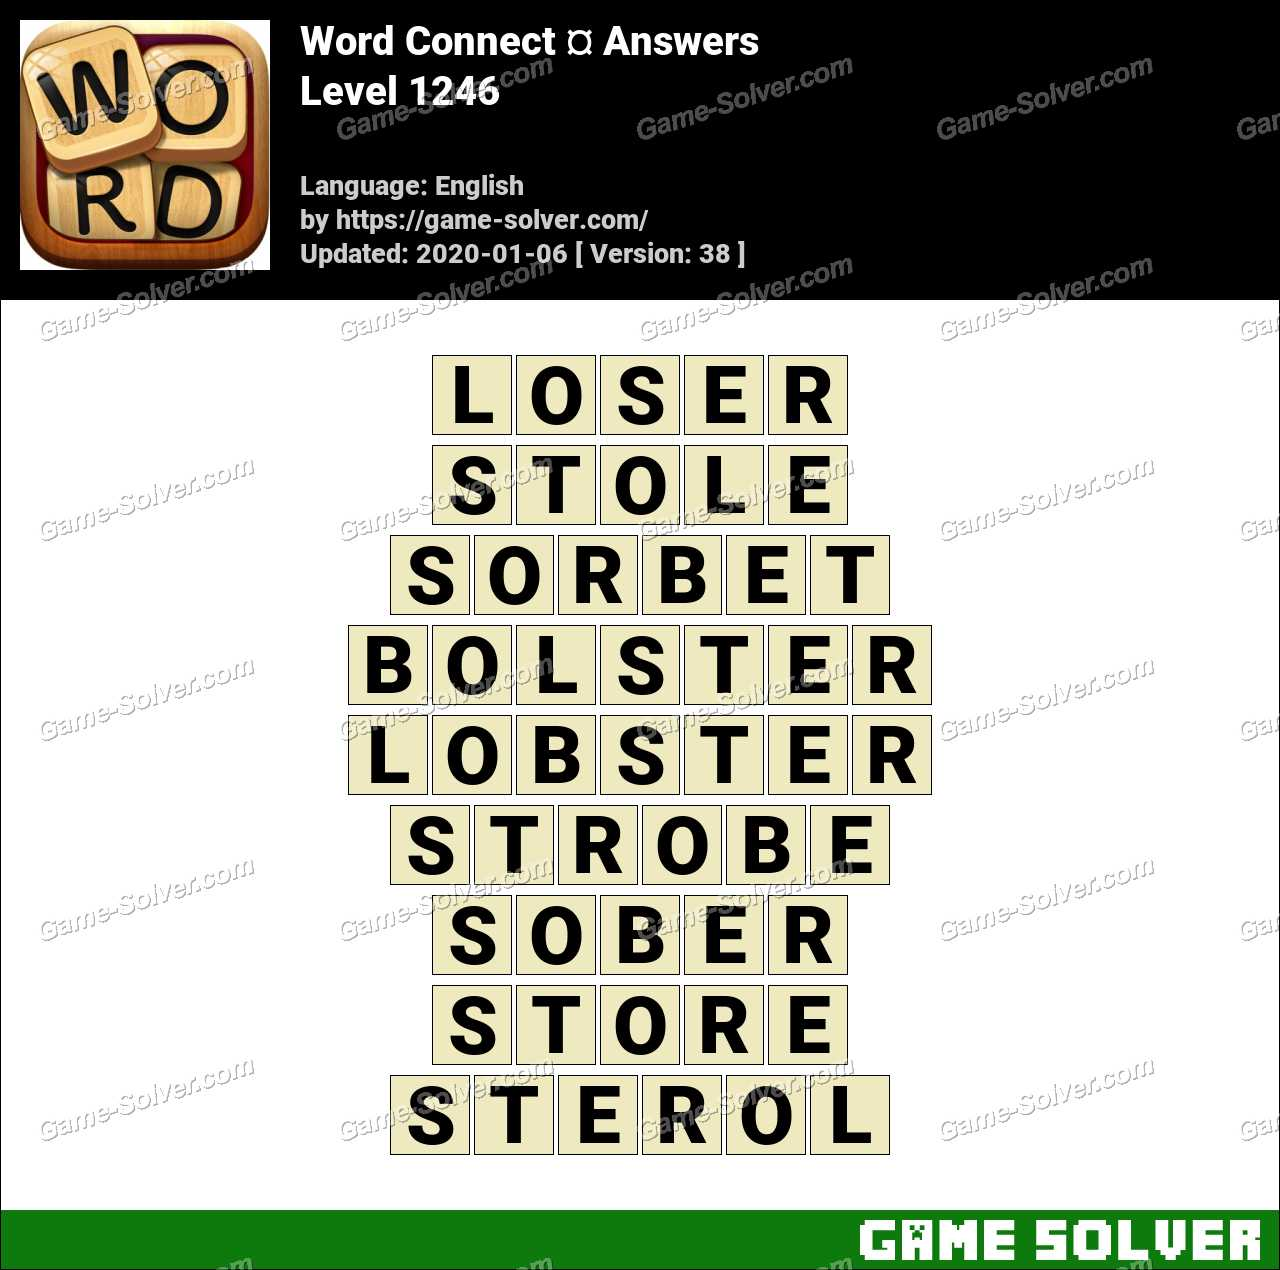 Word Connect Level 1246 Answers